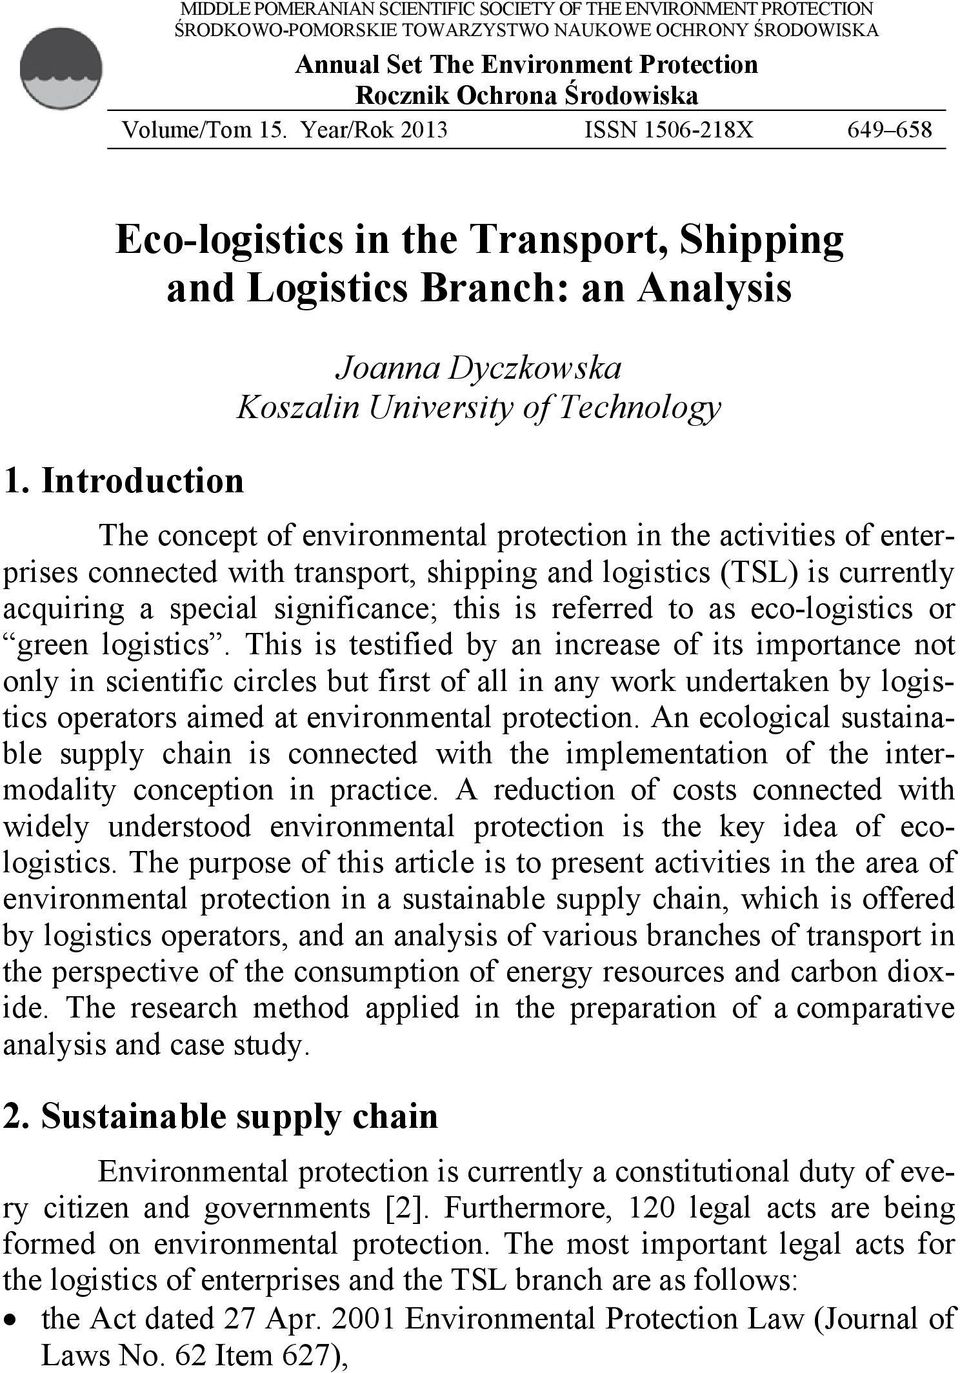 Introduction The concept of environmental protection in the activities of enterprises connected with transport, shipping and logistics (TSL) is currently acquiring a special significance; this is